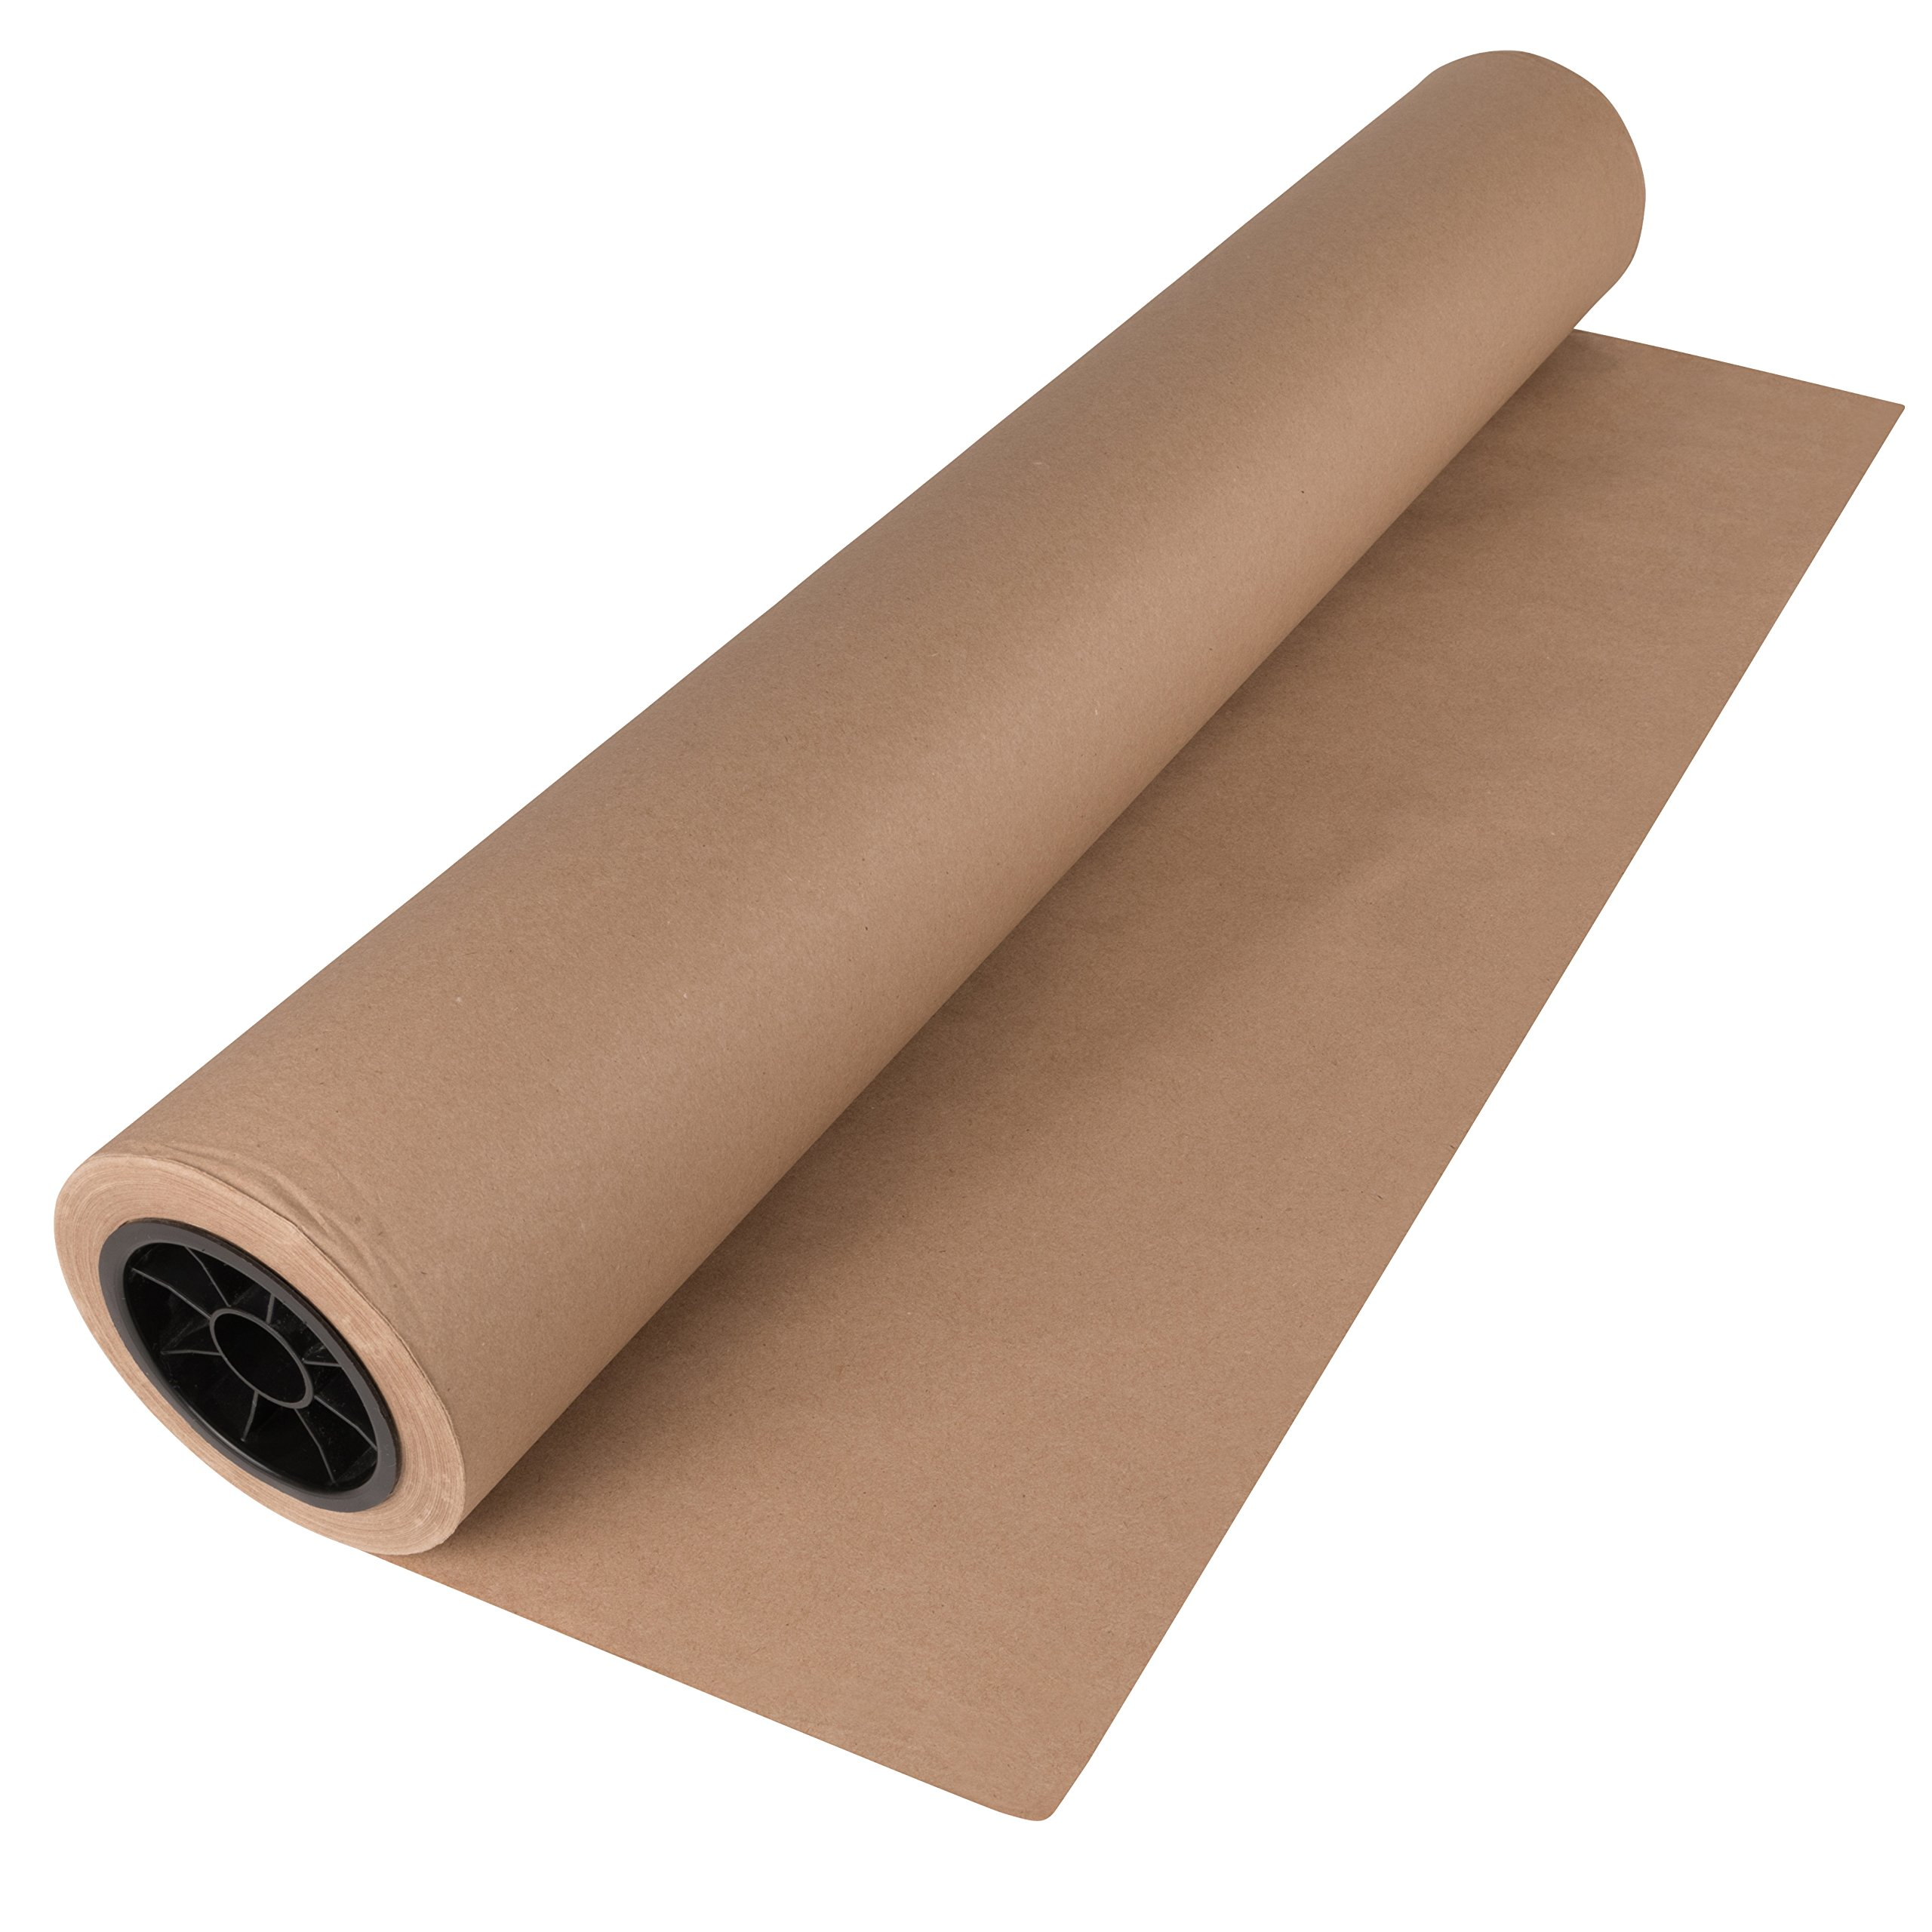 """Brown Kraft Paper Roll 30""""x200 FT (2,400'') Single Roll, Made in The USA 100% Recycled Materials, Wrapping Paper, DIY Gift Wrapping, Packing, Postal, Shipping by Woodpeckers Craft"""